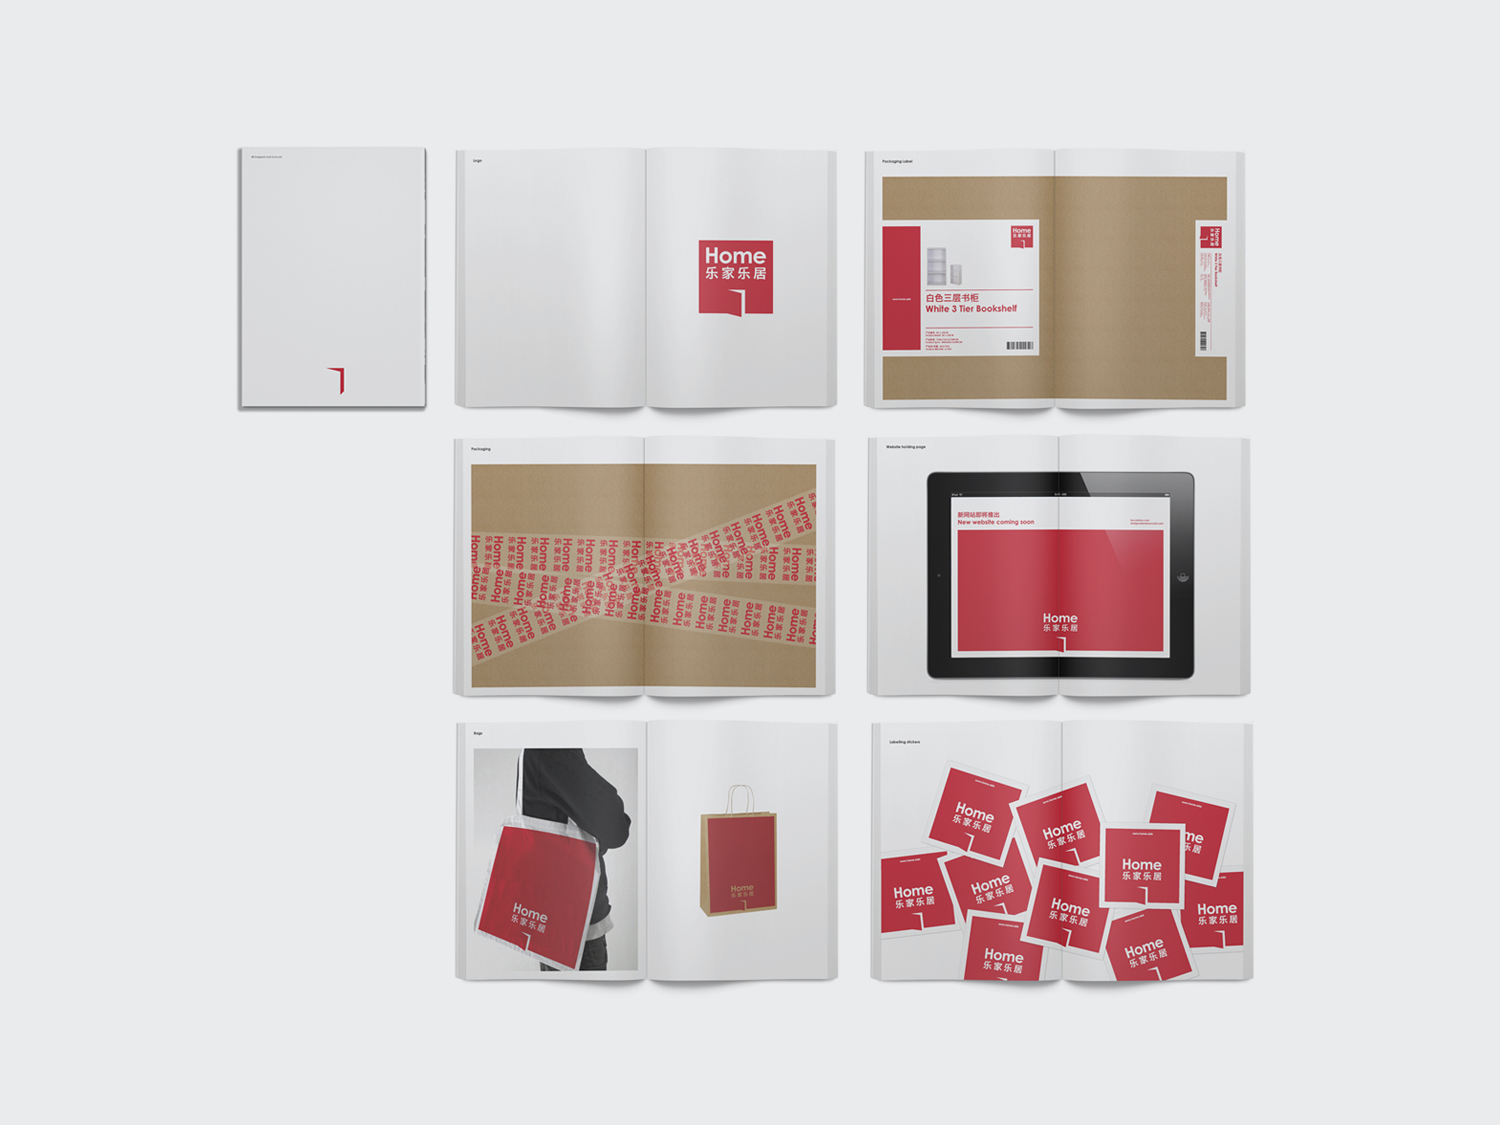 Home Brand China Department Store. Home branding for Designed & Sourced.